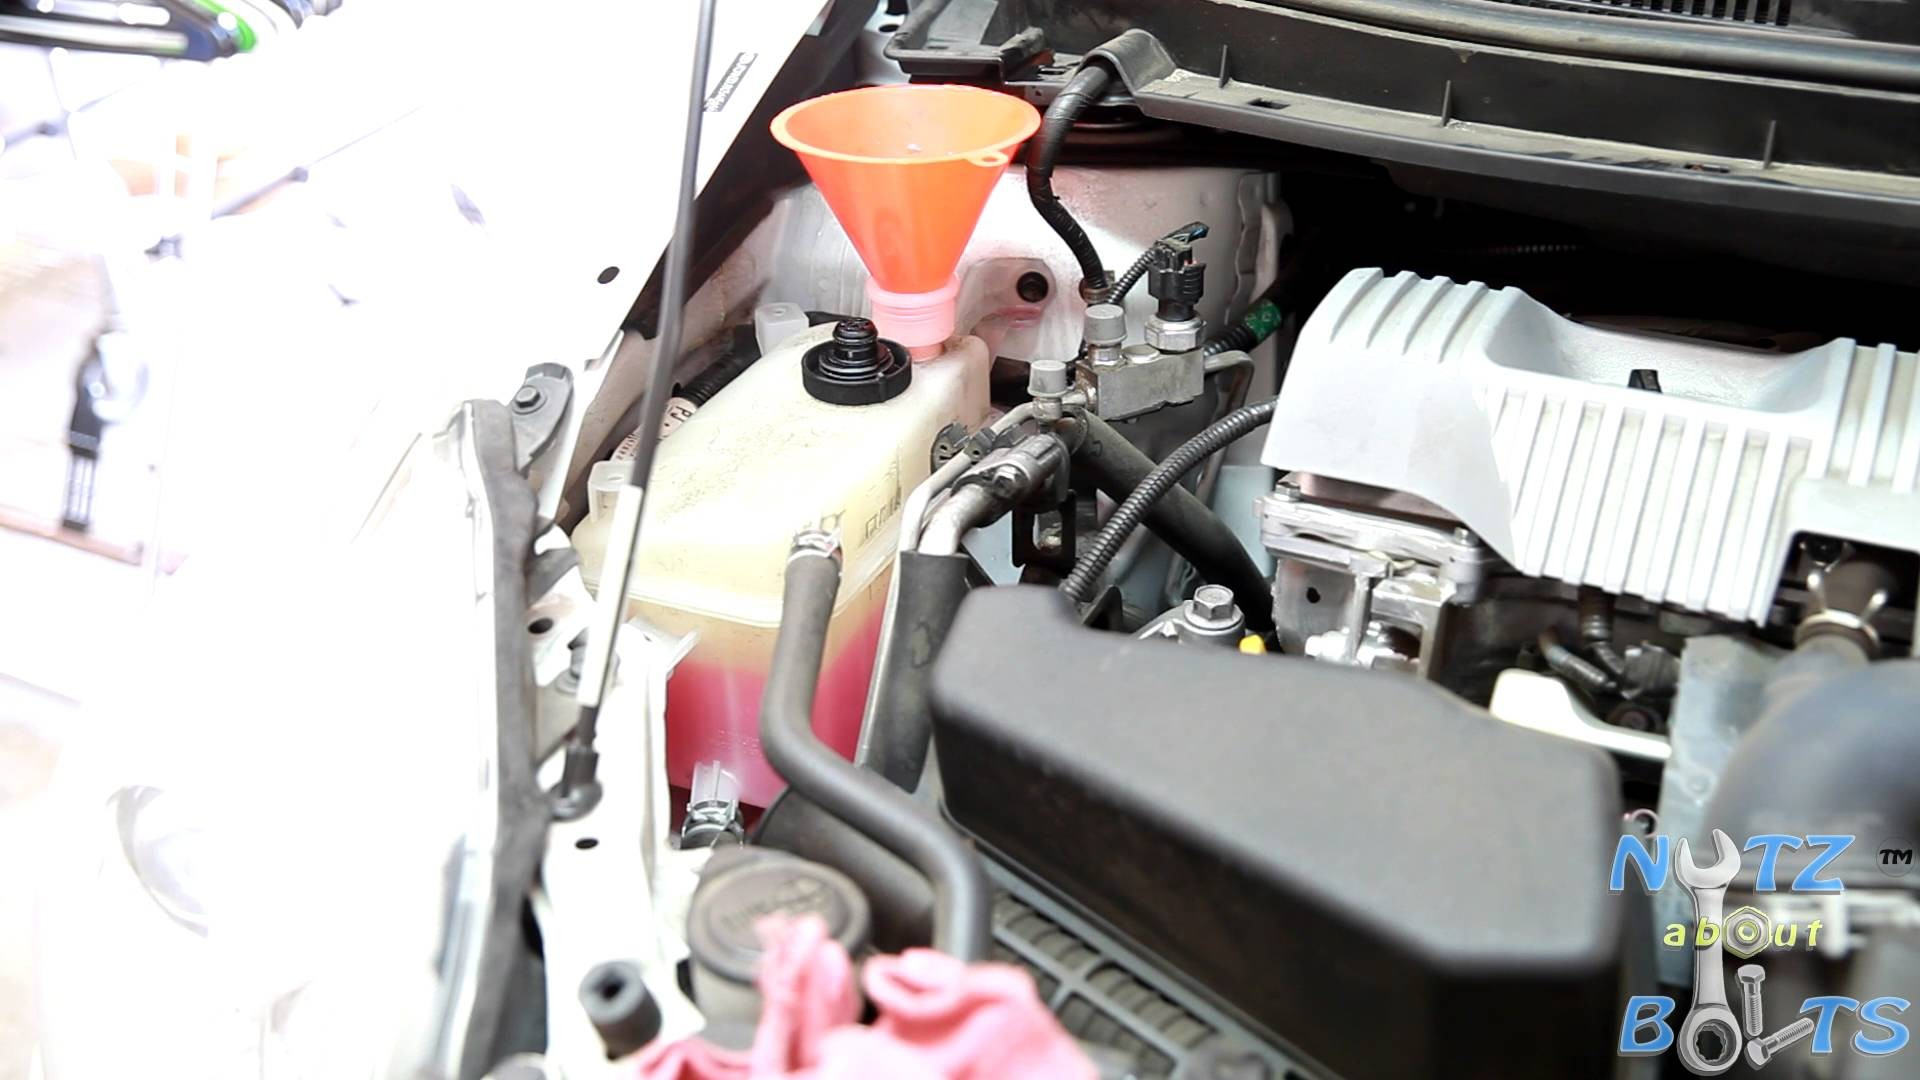 2005 Prius Engine Diagram Simple Guide About Wiring 2012 Fuse Will Not Start After Replacing 12 Rh Detoxicrecenze Com